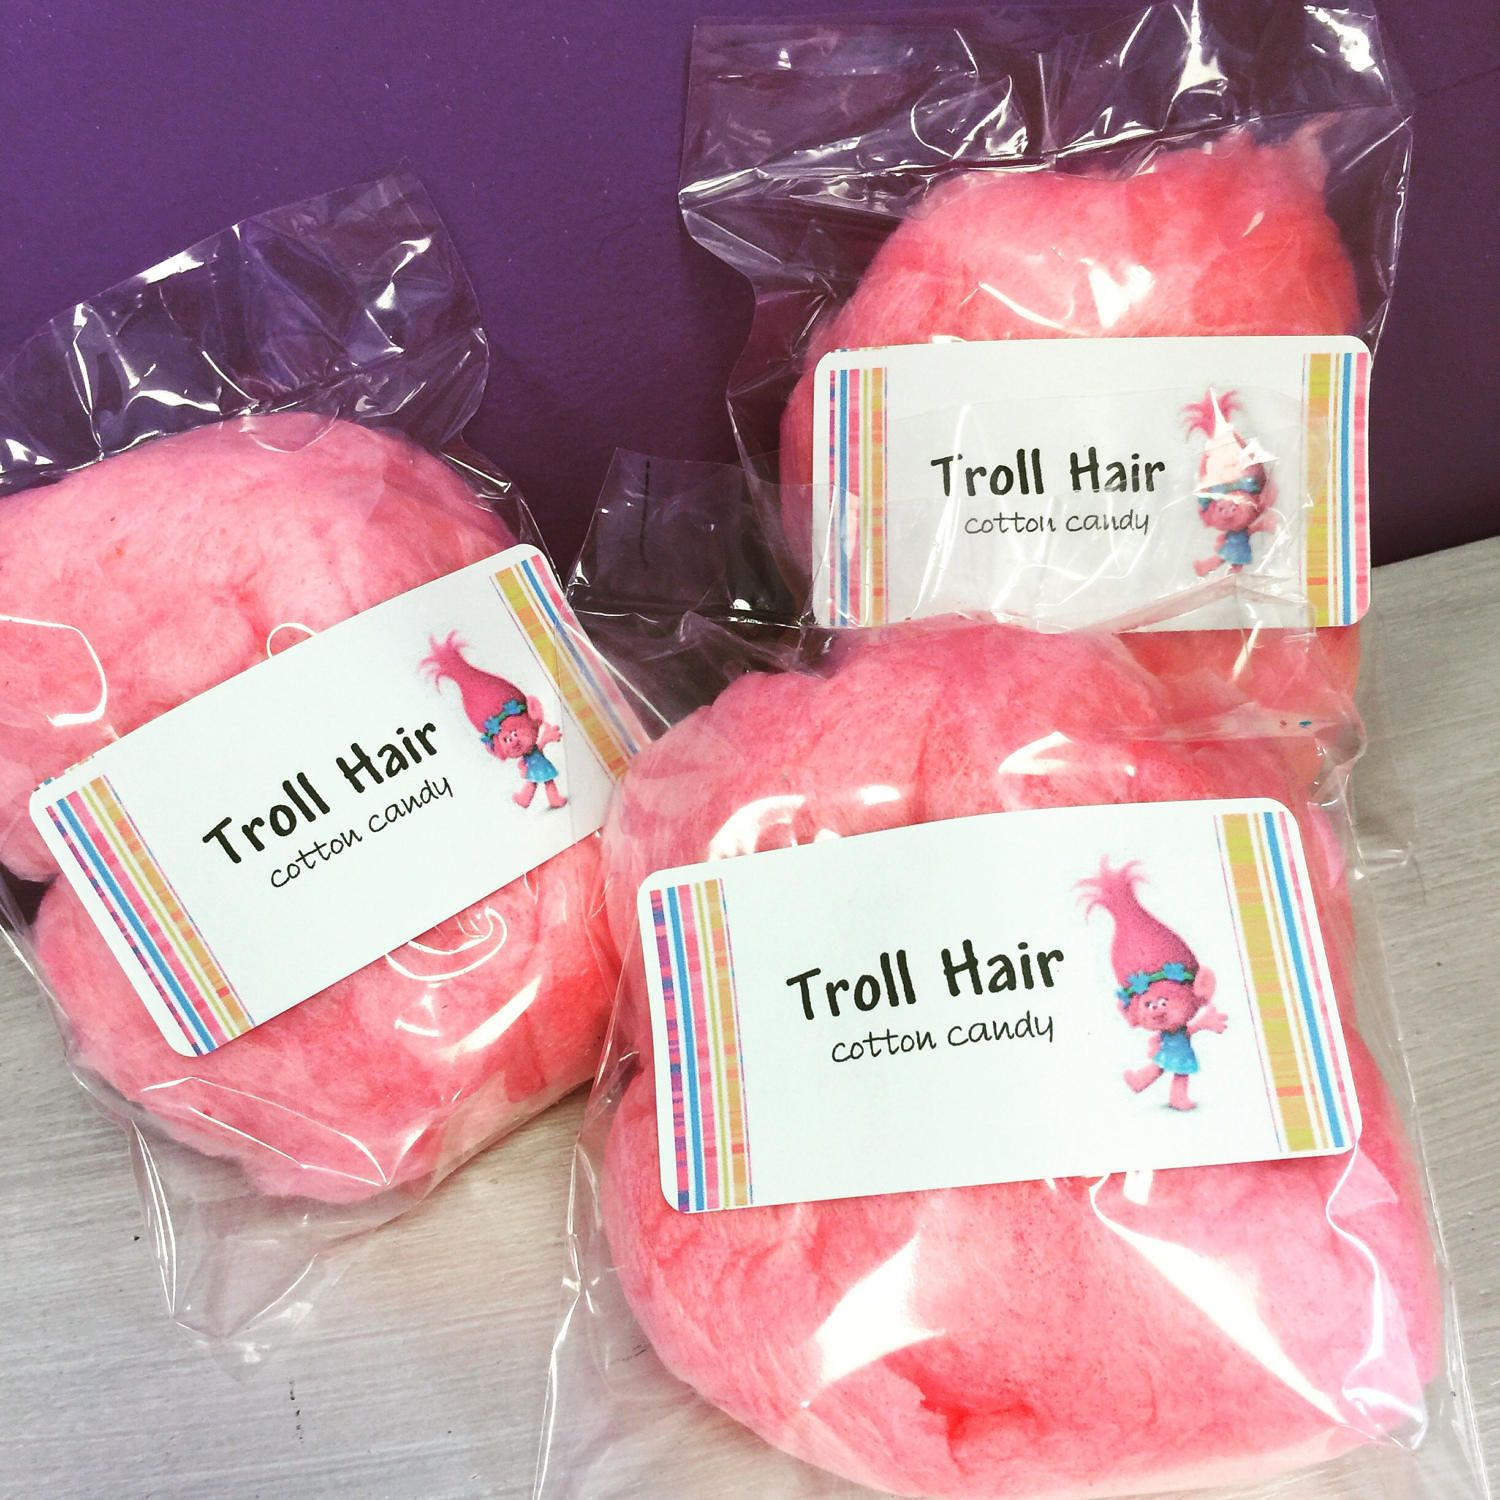 15 Troll Hair Cotton Candy Favors 1 flavor per bag Pink or | Etsy